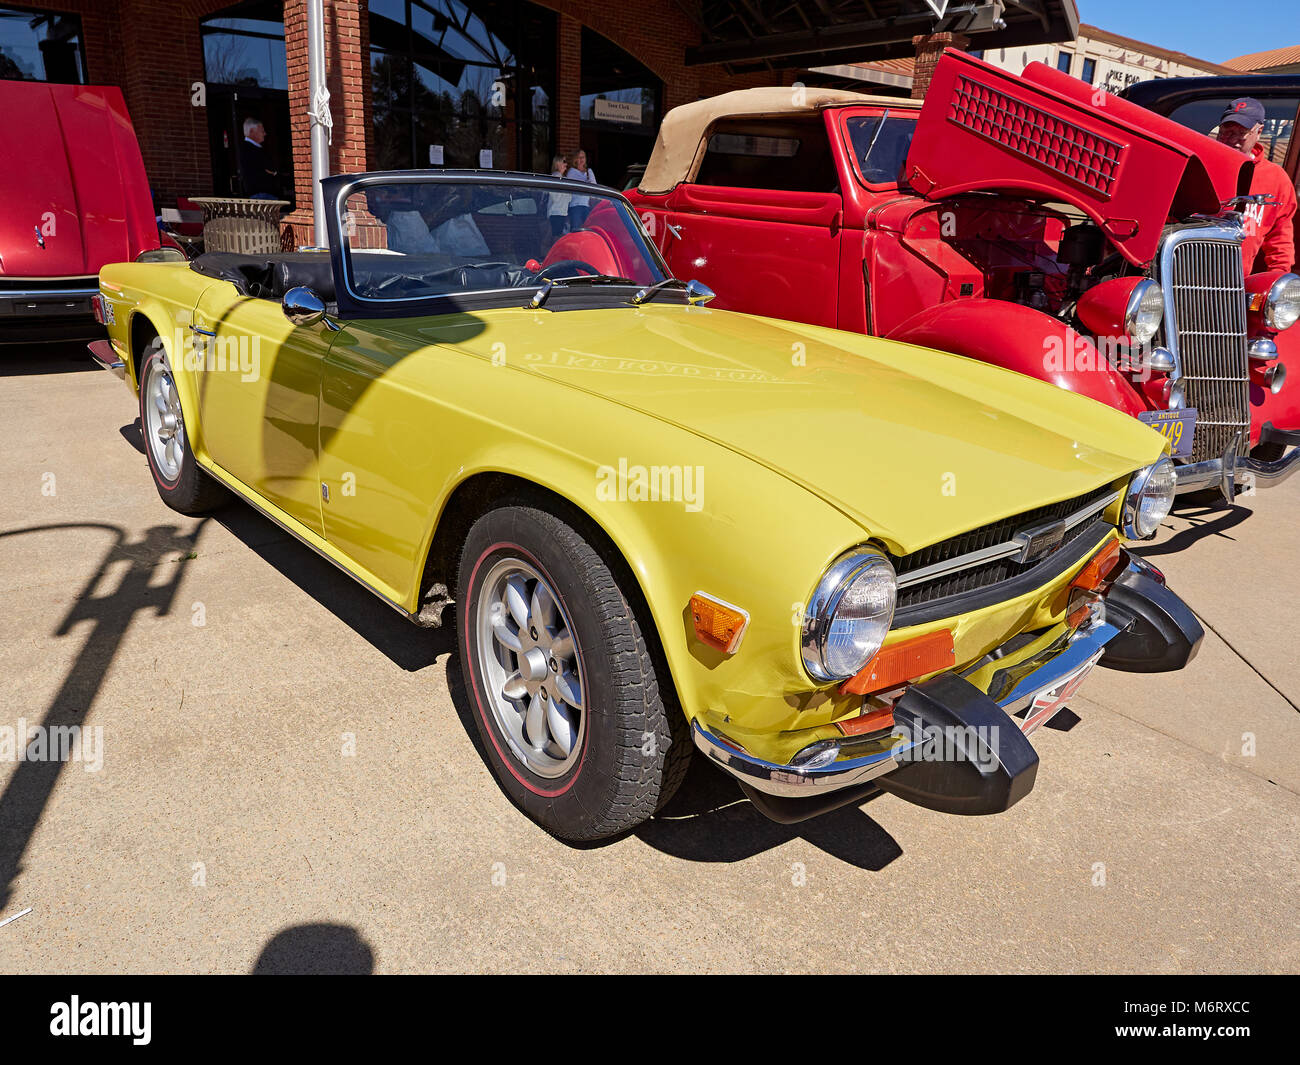 1975 Triumph TR6 convertible sports car on display at a vintage British classic car club show in Pike Road, Alabama, - Stock Image